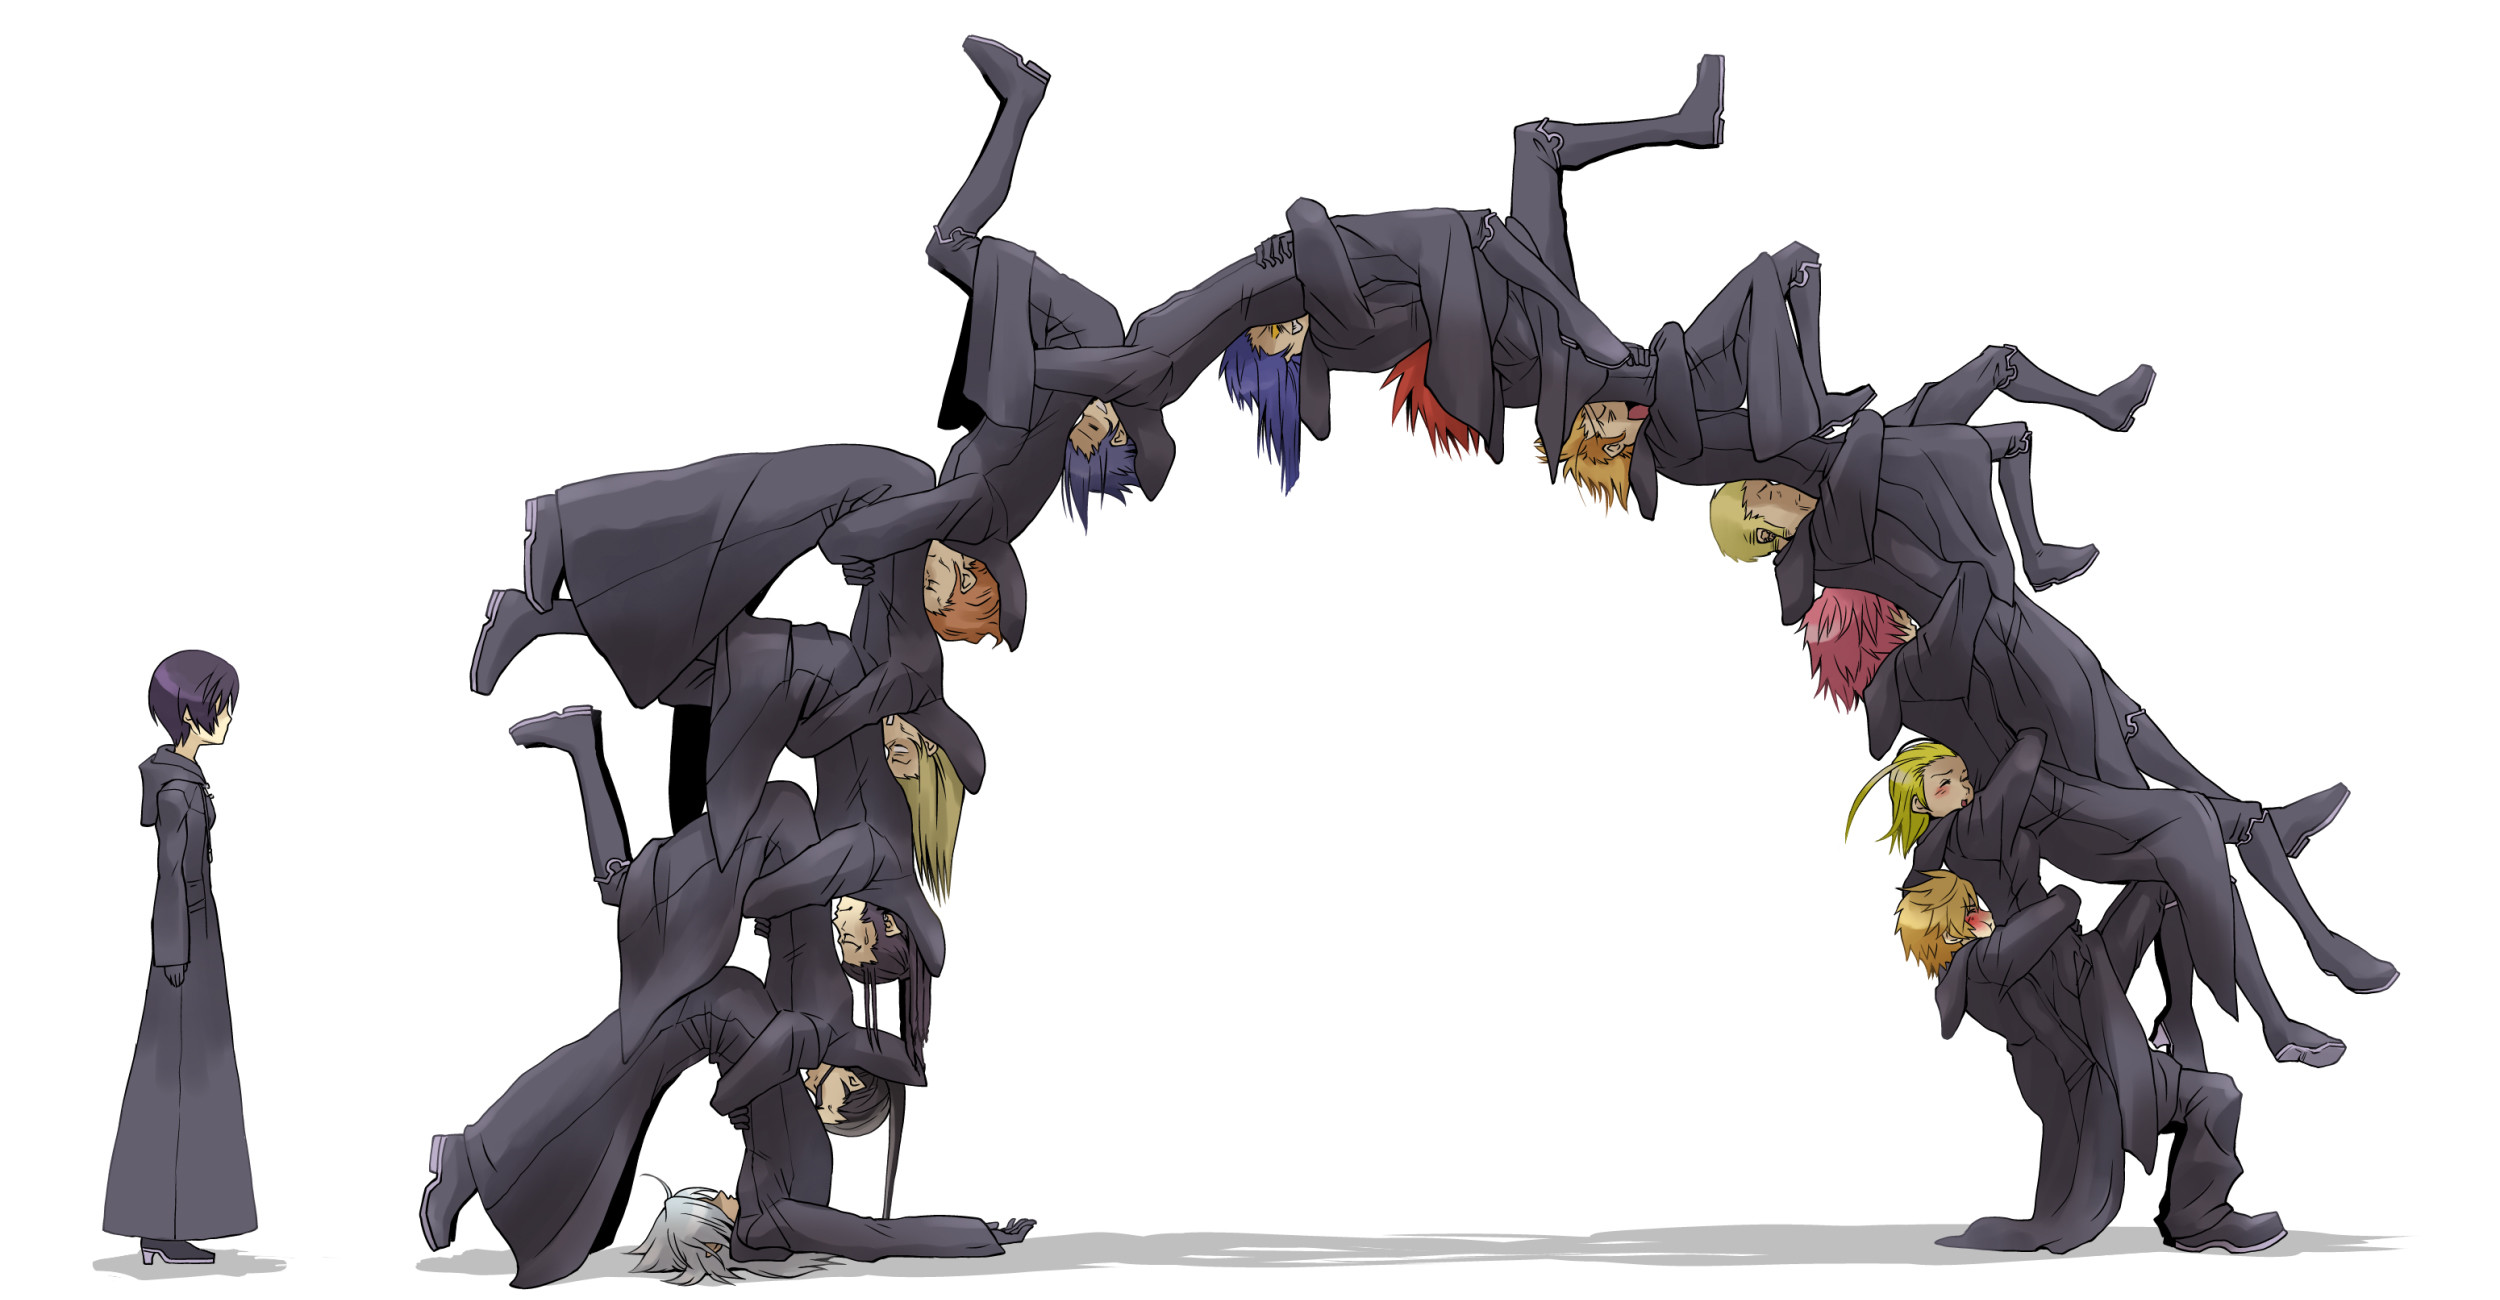 Res: 2500x1300, Kingdom Hearts · download Kingdom Hearts image